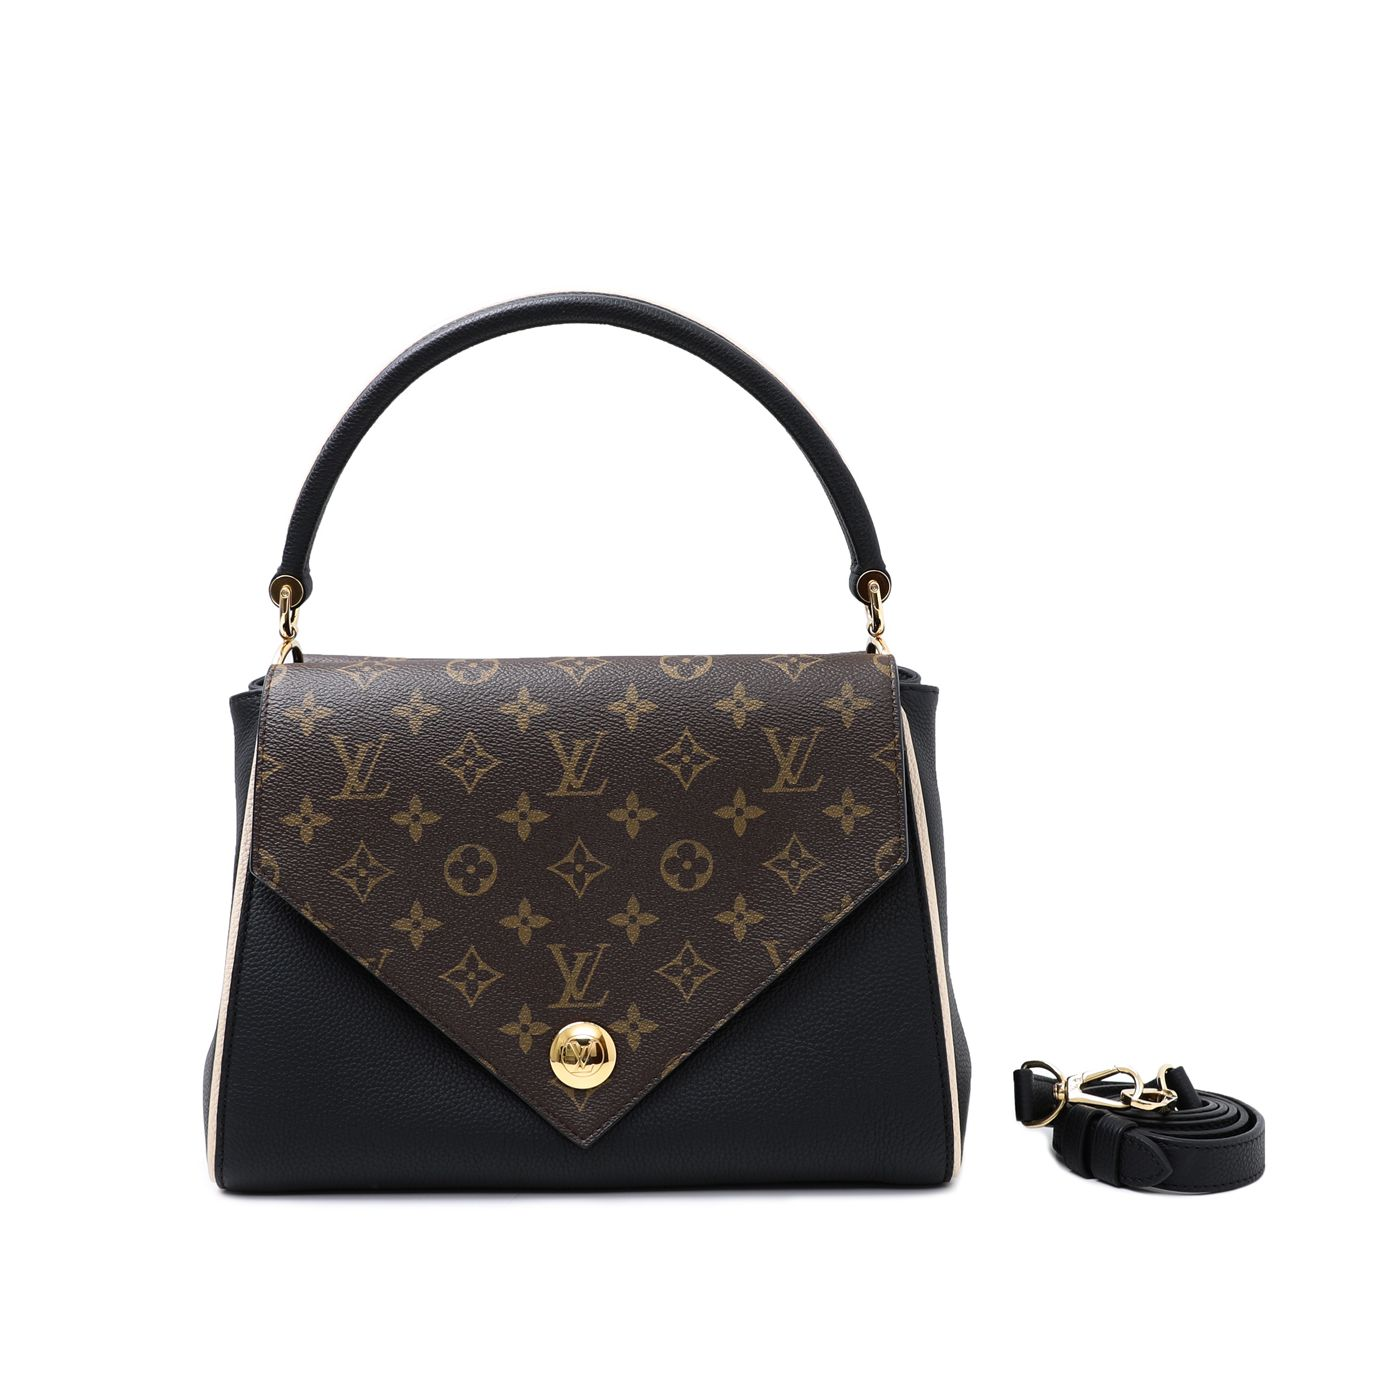 Louis Vuitton Black Double V Bag